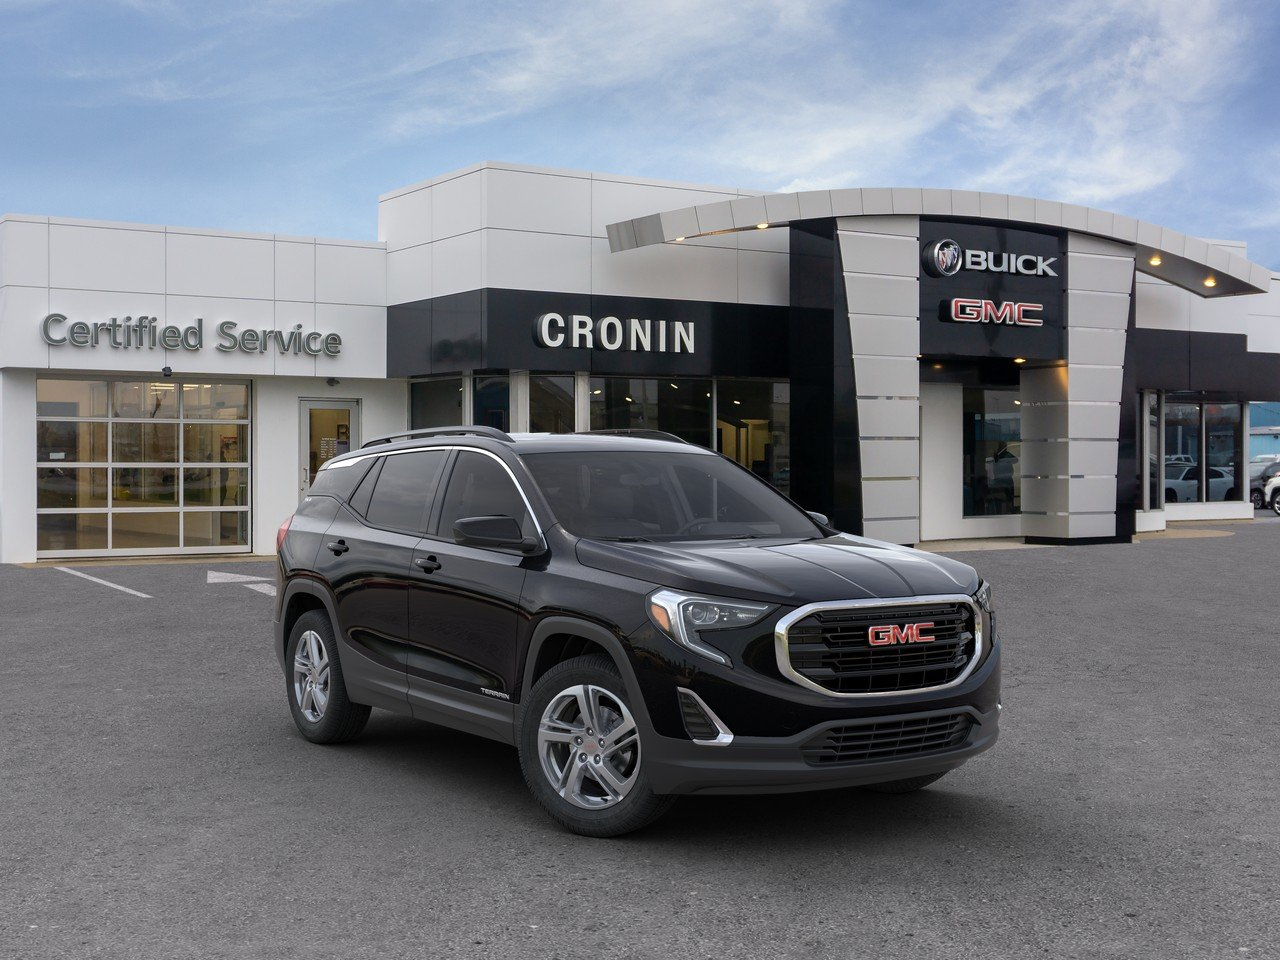 New Gmc Terrain >> New 2020 Gmc Terrain For Sale In Perrysburg Vin 3gkaltev5ll150330